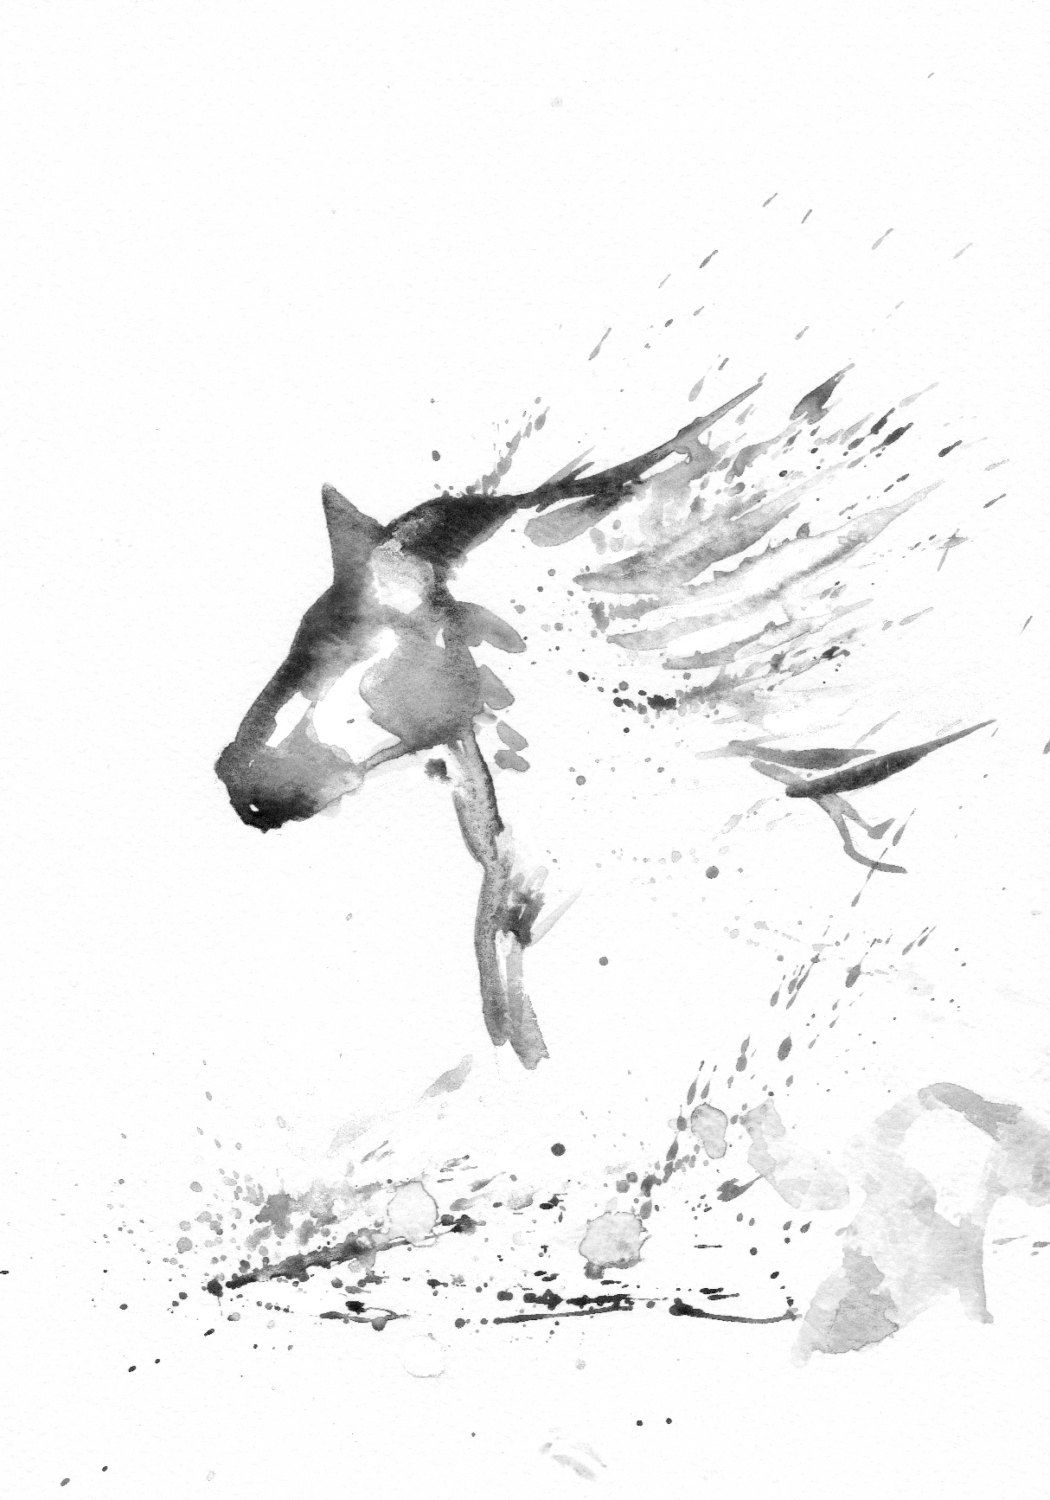 Zen In BW Art Watercolor Painting Print Original Animal Horse Home Decor Illustration Black And White